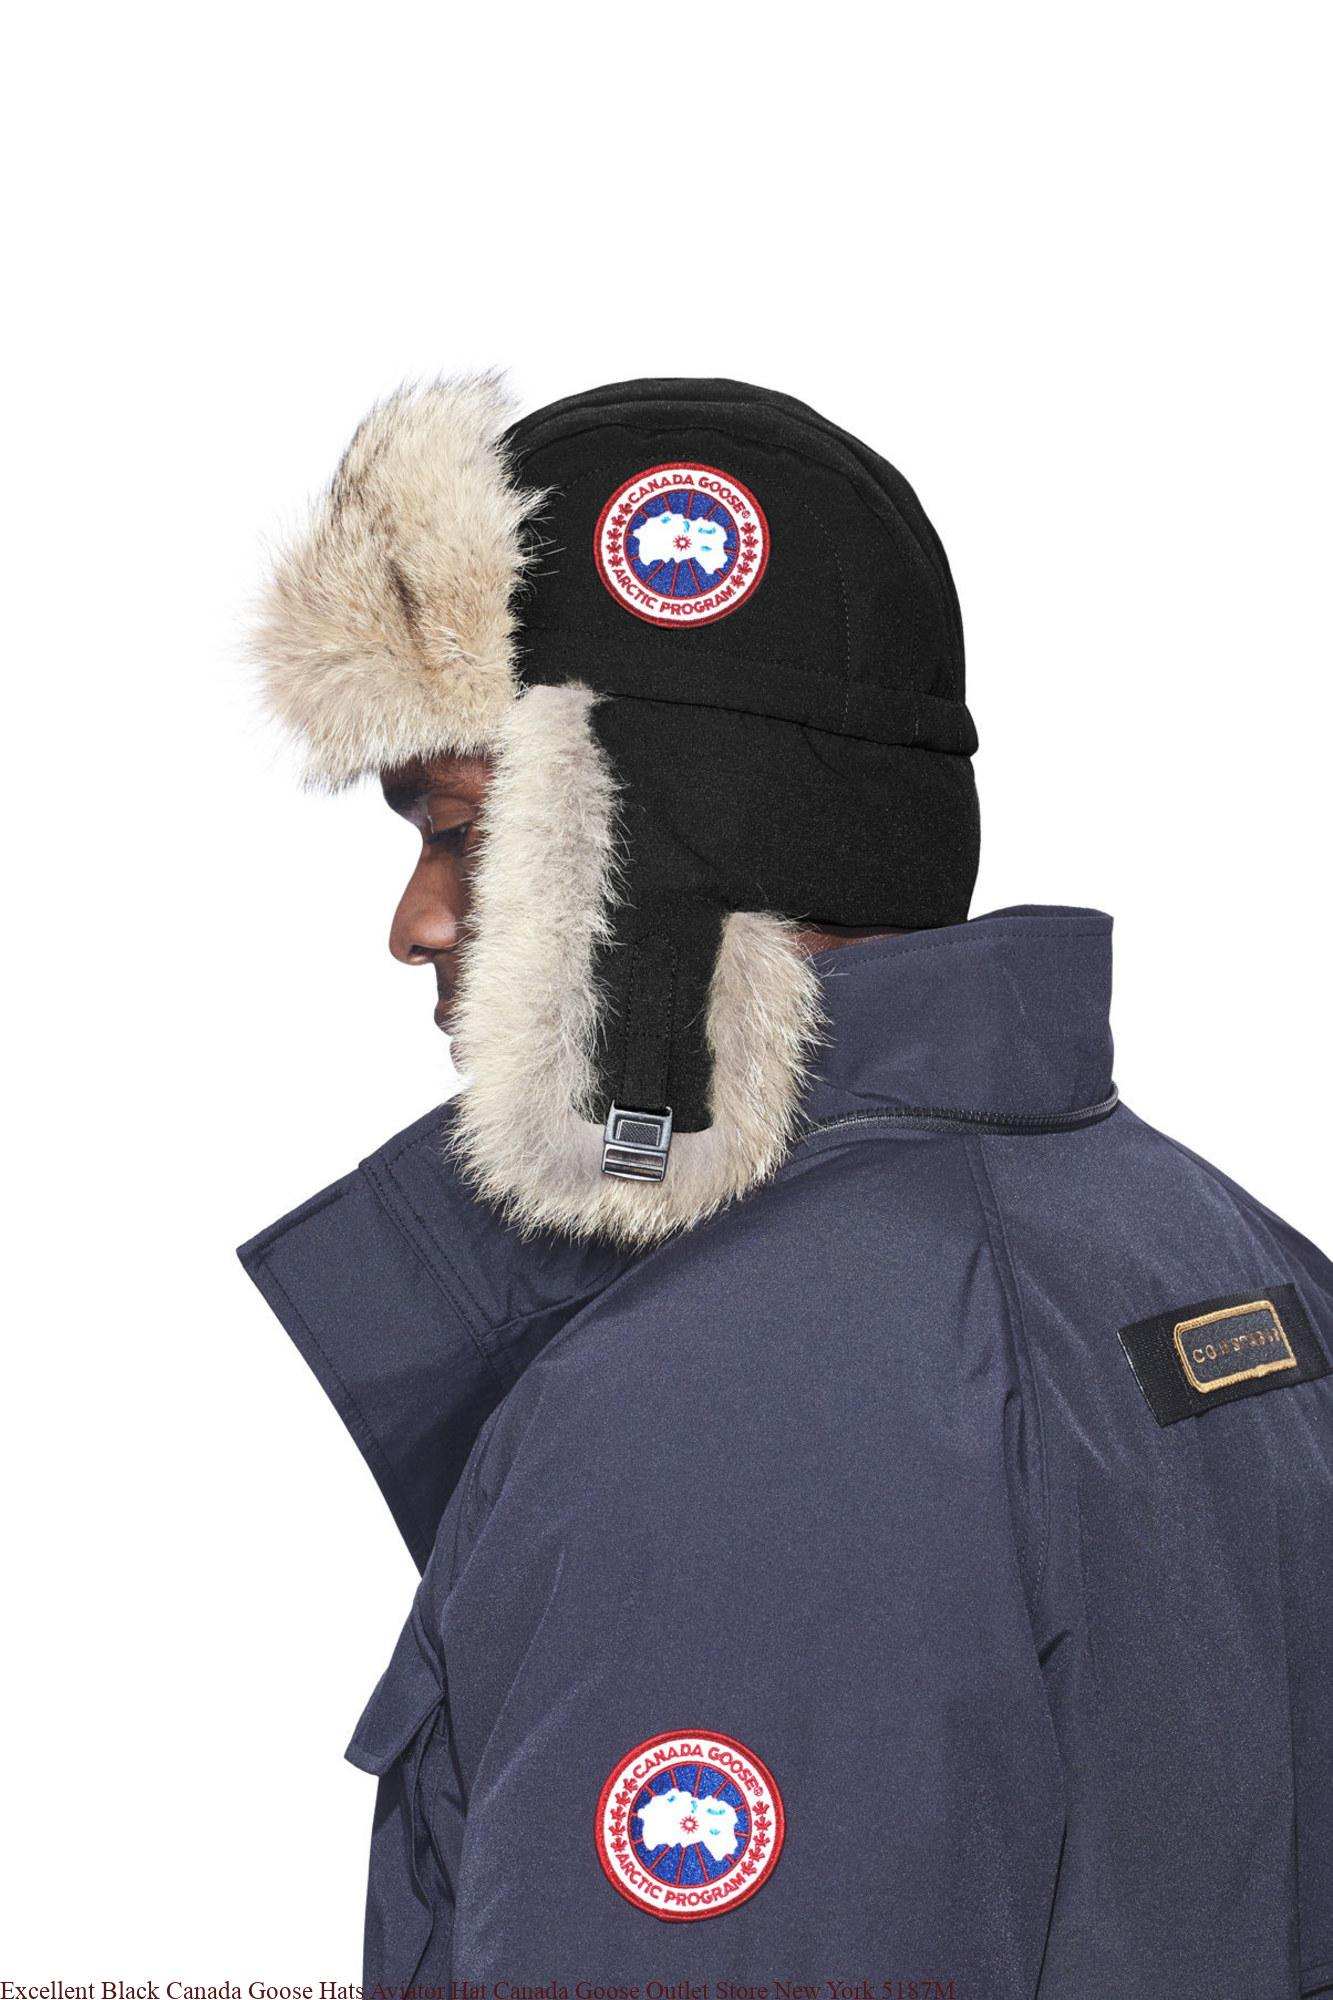 Excellent Black Canada Goose Hats Aviator Hat Canada Goose Outlet Store New  York 5187M – UK Cheap Canada Goose Outlet Jackets On Sale